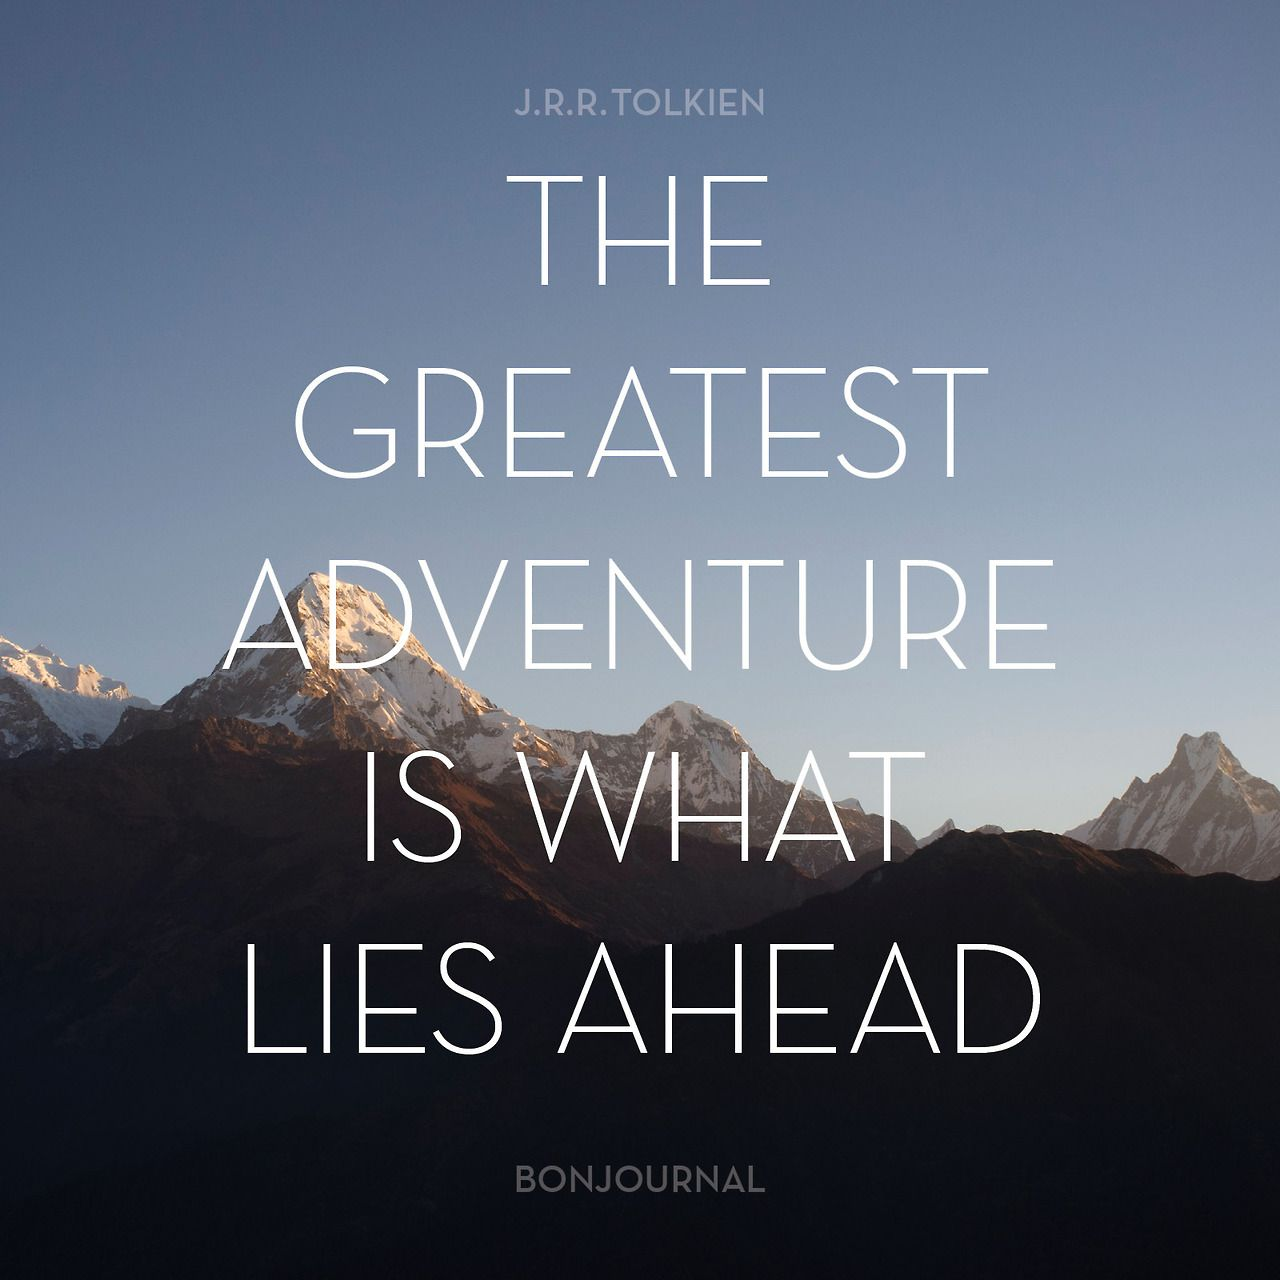 Adventure Travel: We're Embarking On An Exciting Journey. It's Not Going To